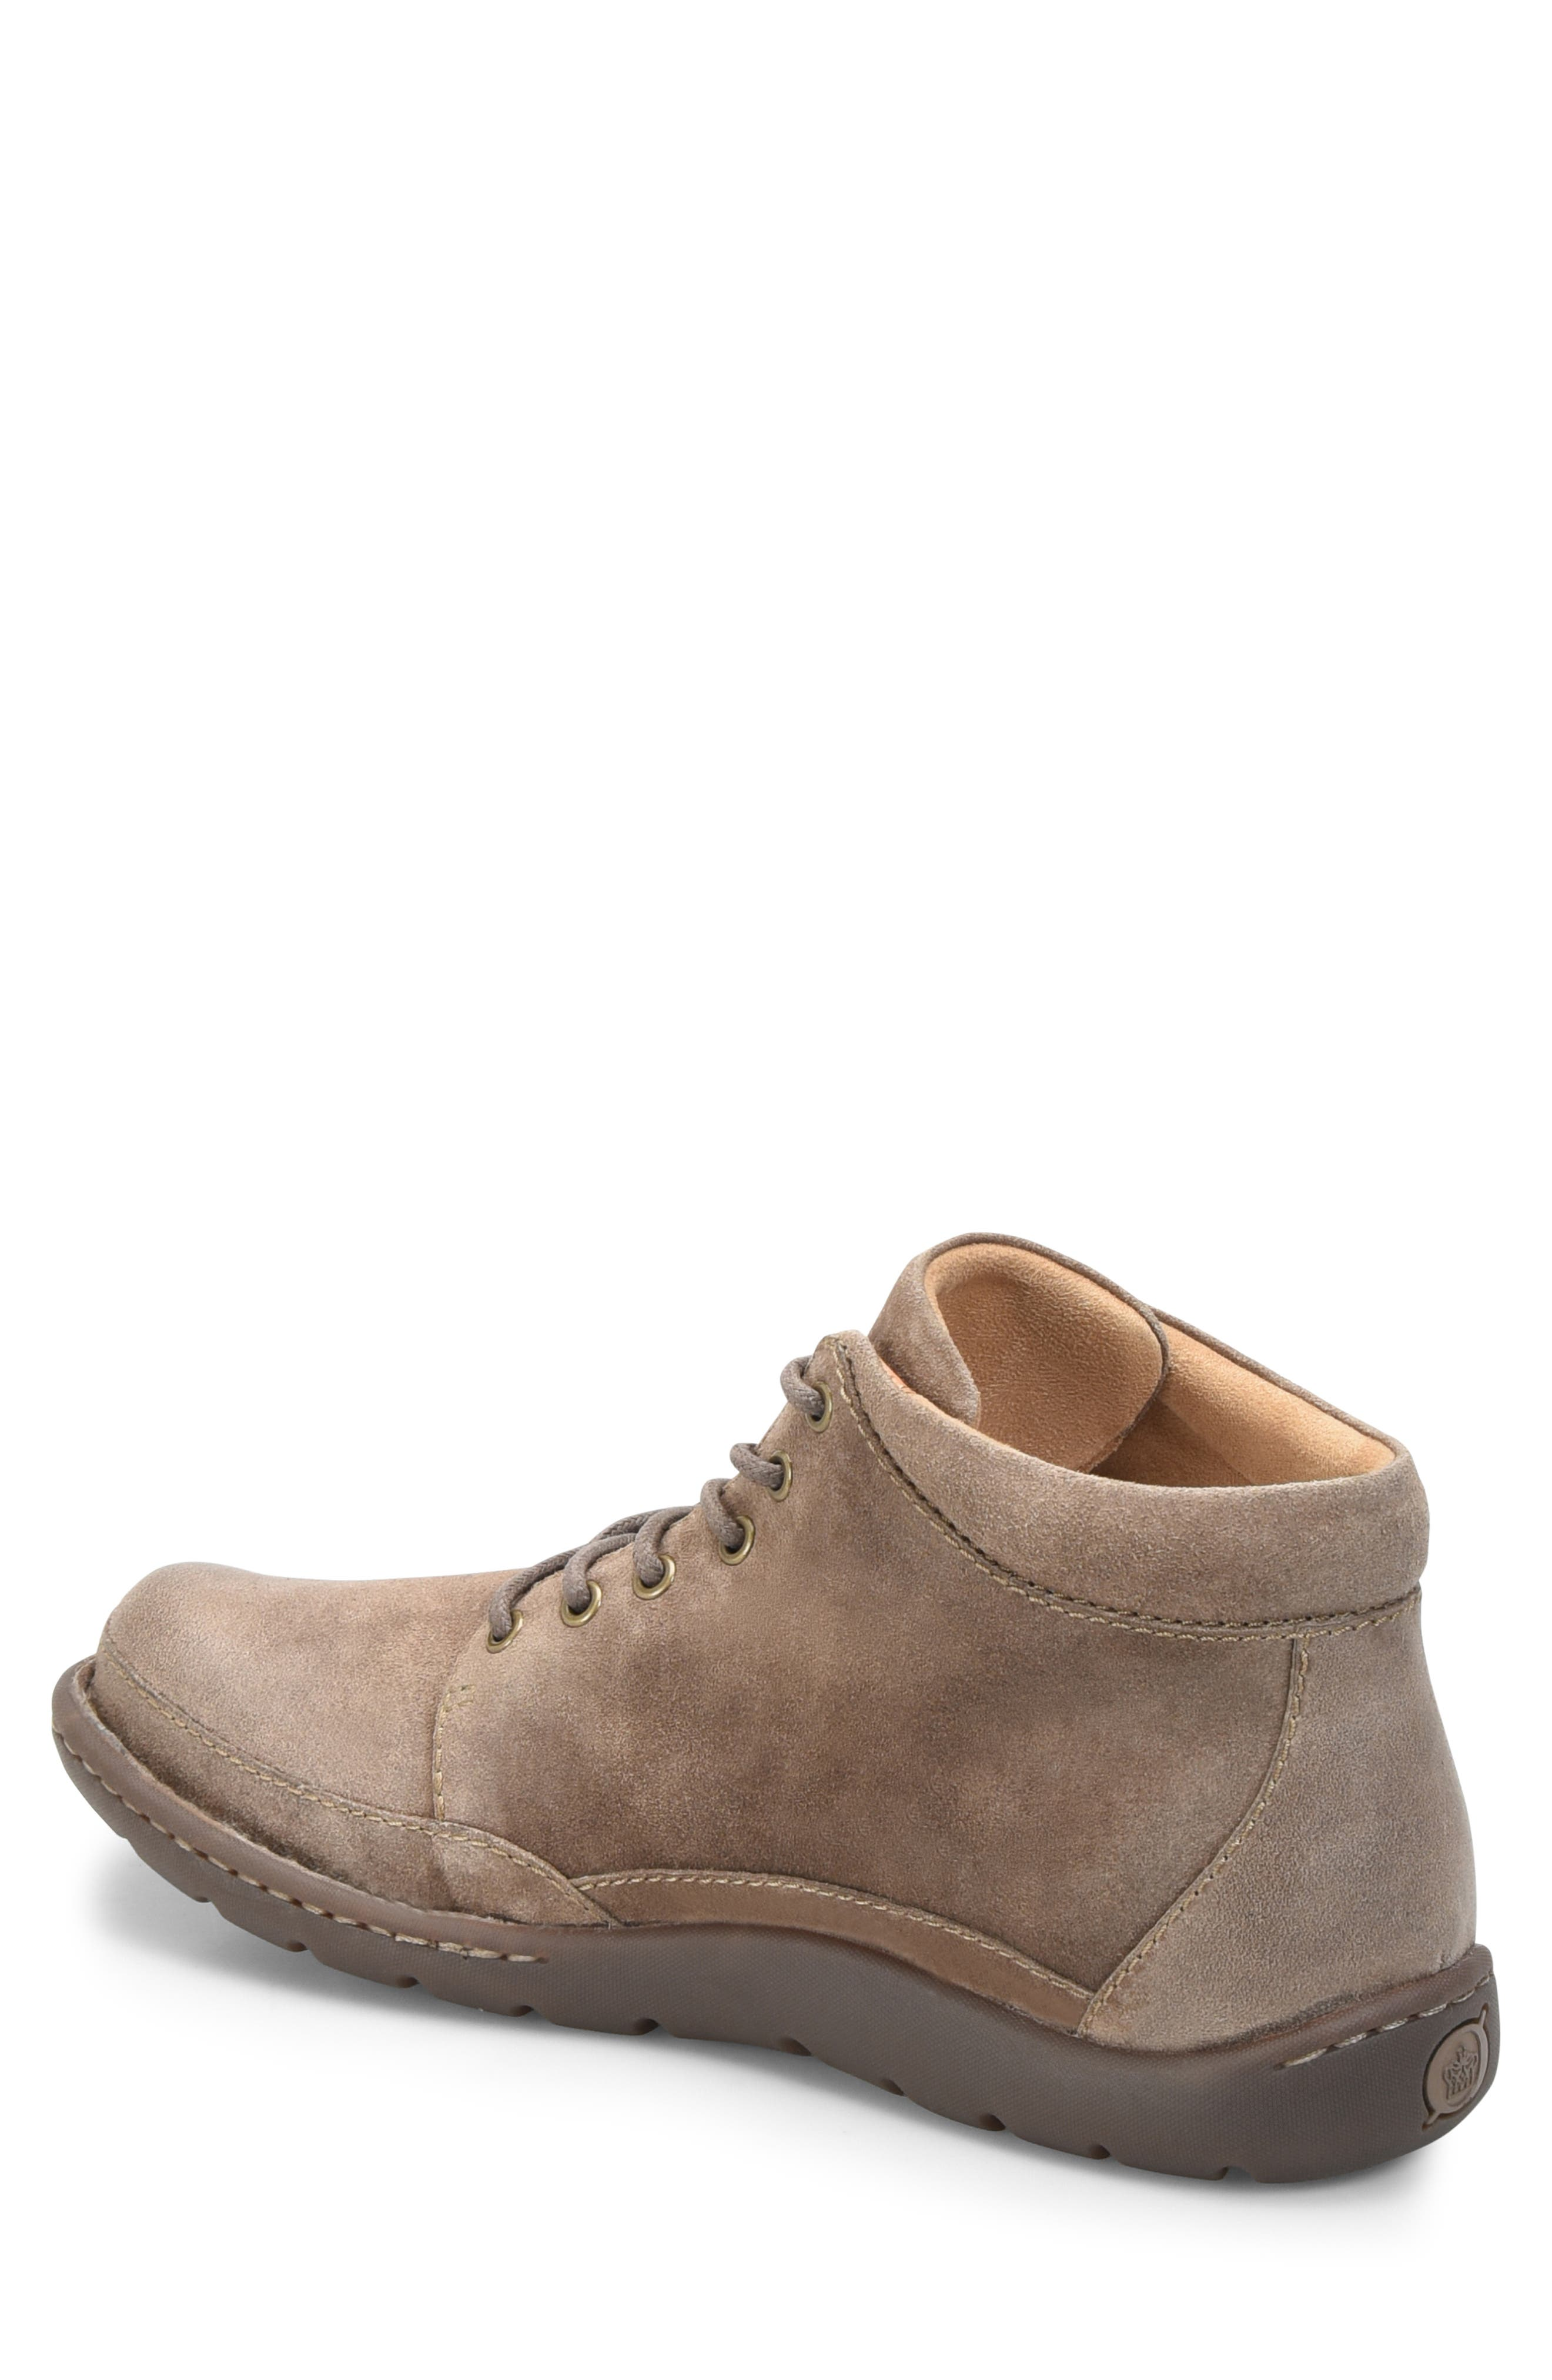 Nigel Low Boot,                             Alternate thumbnail 2, color,                             TAUPE LEATHER